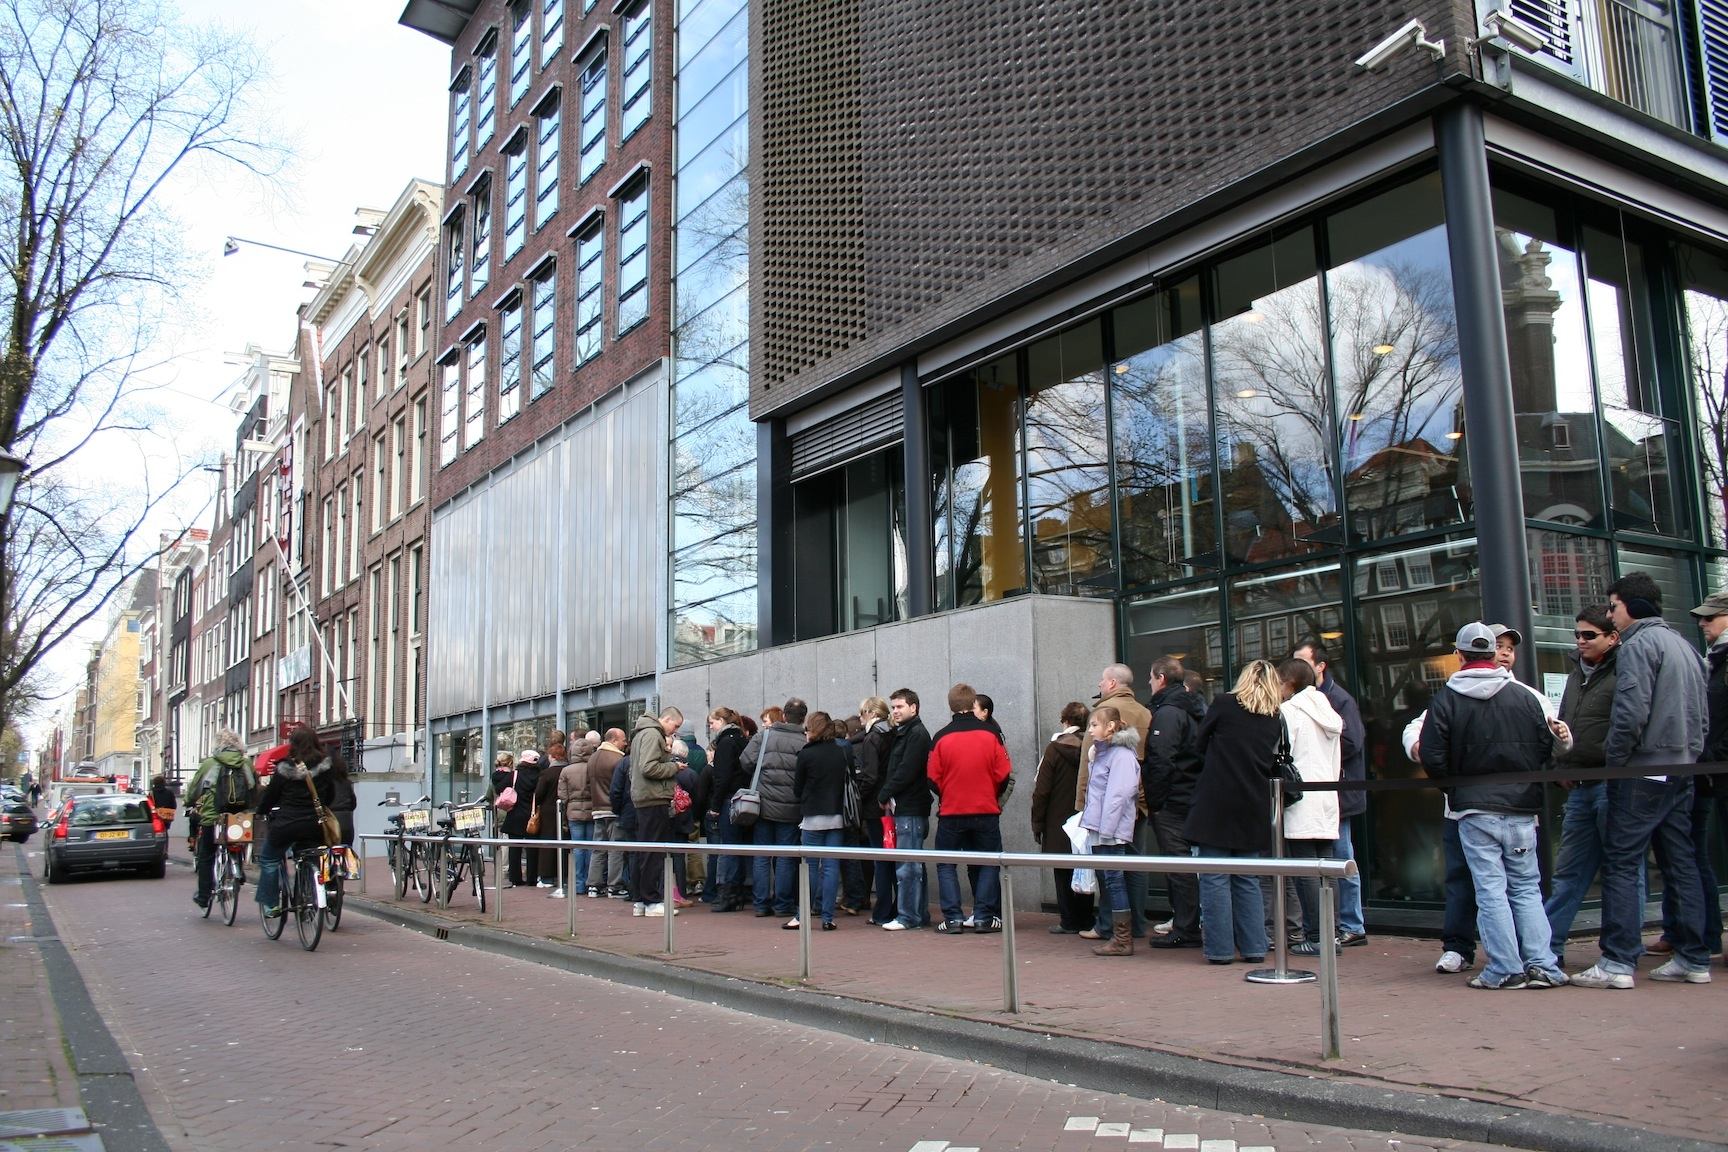 The Anne Frank House Museum in Amsterdam, Netherlands. (Wikimedia Commons)